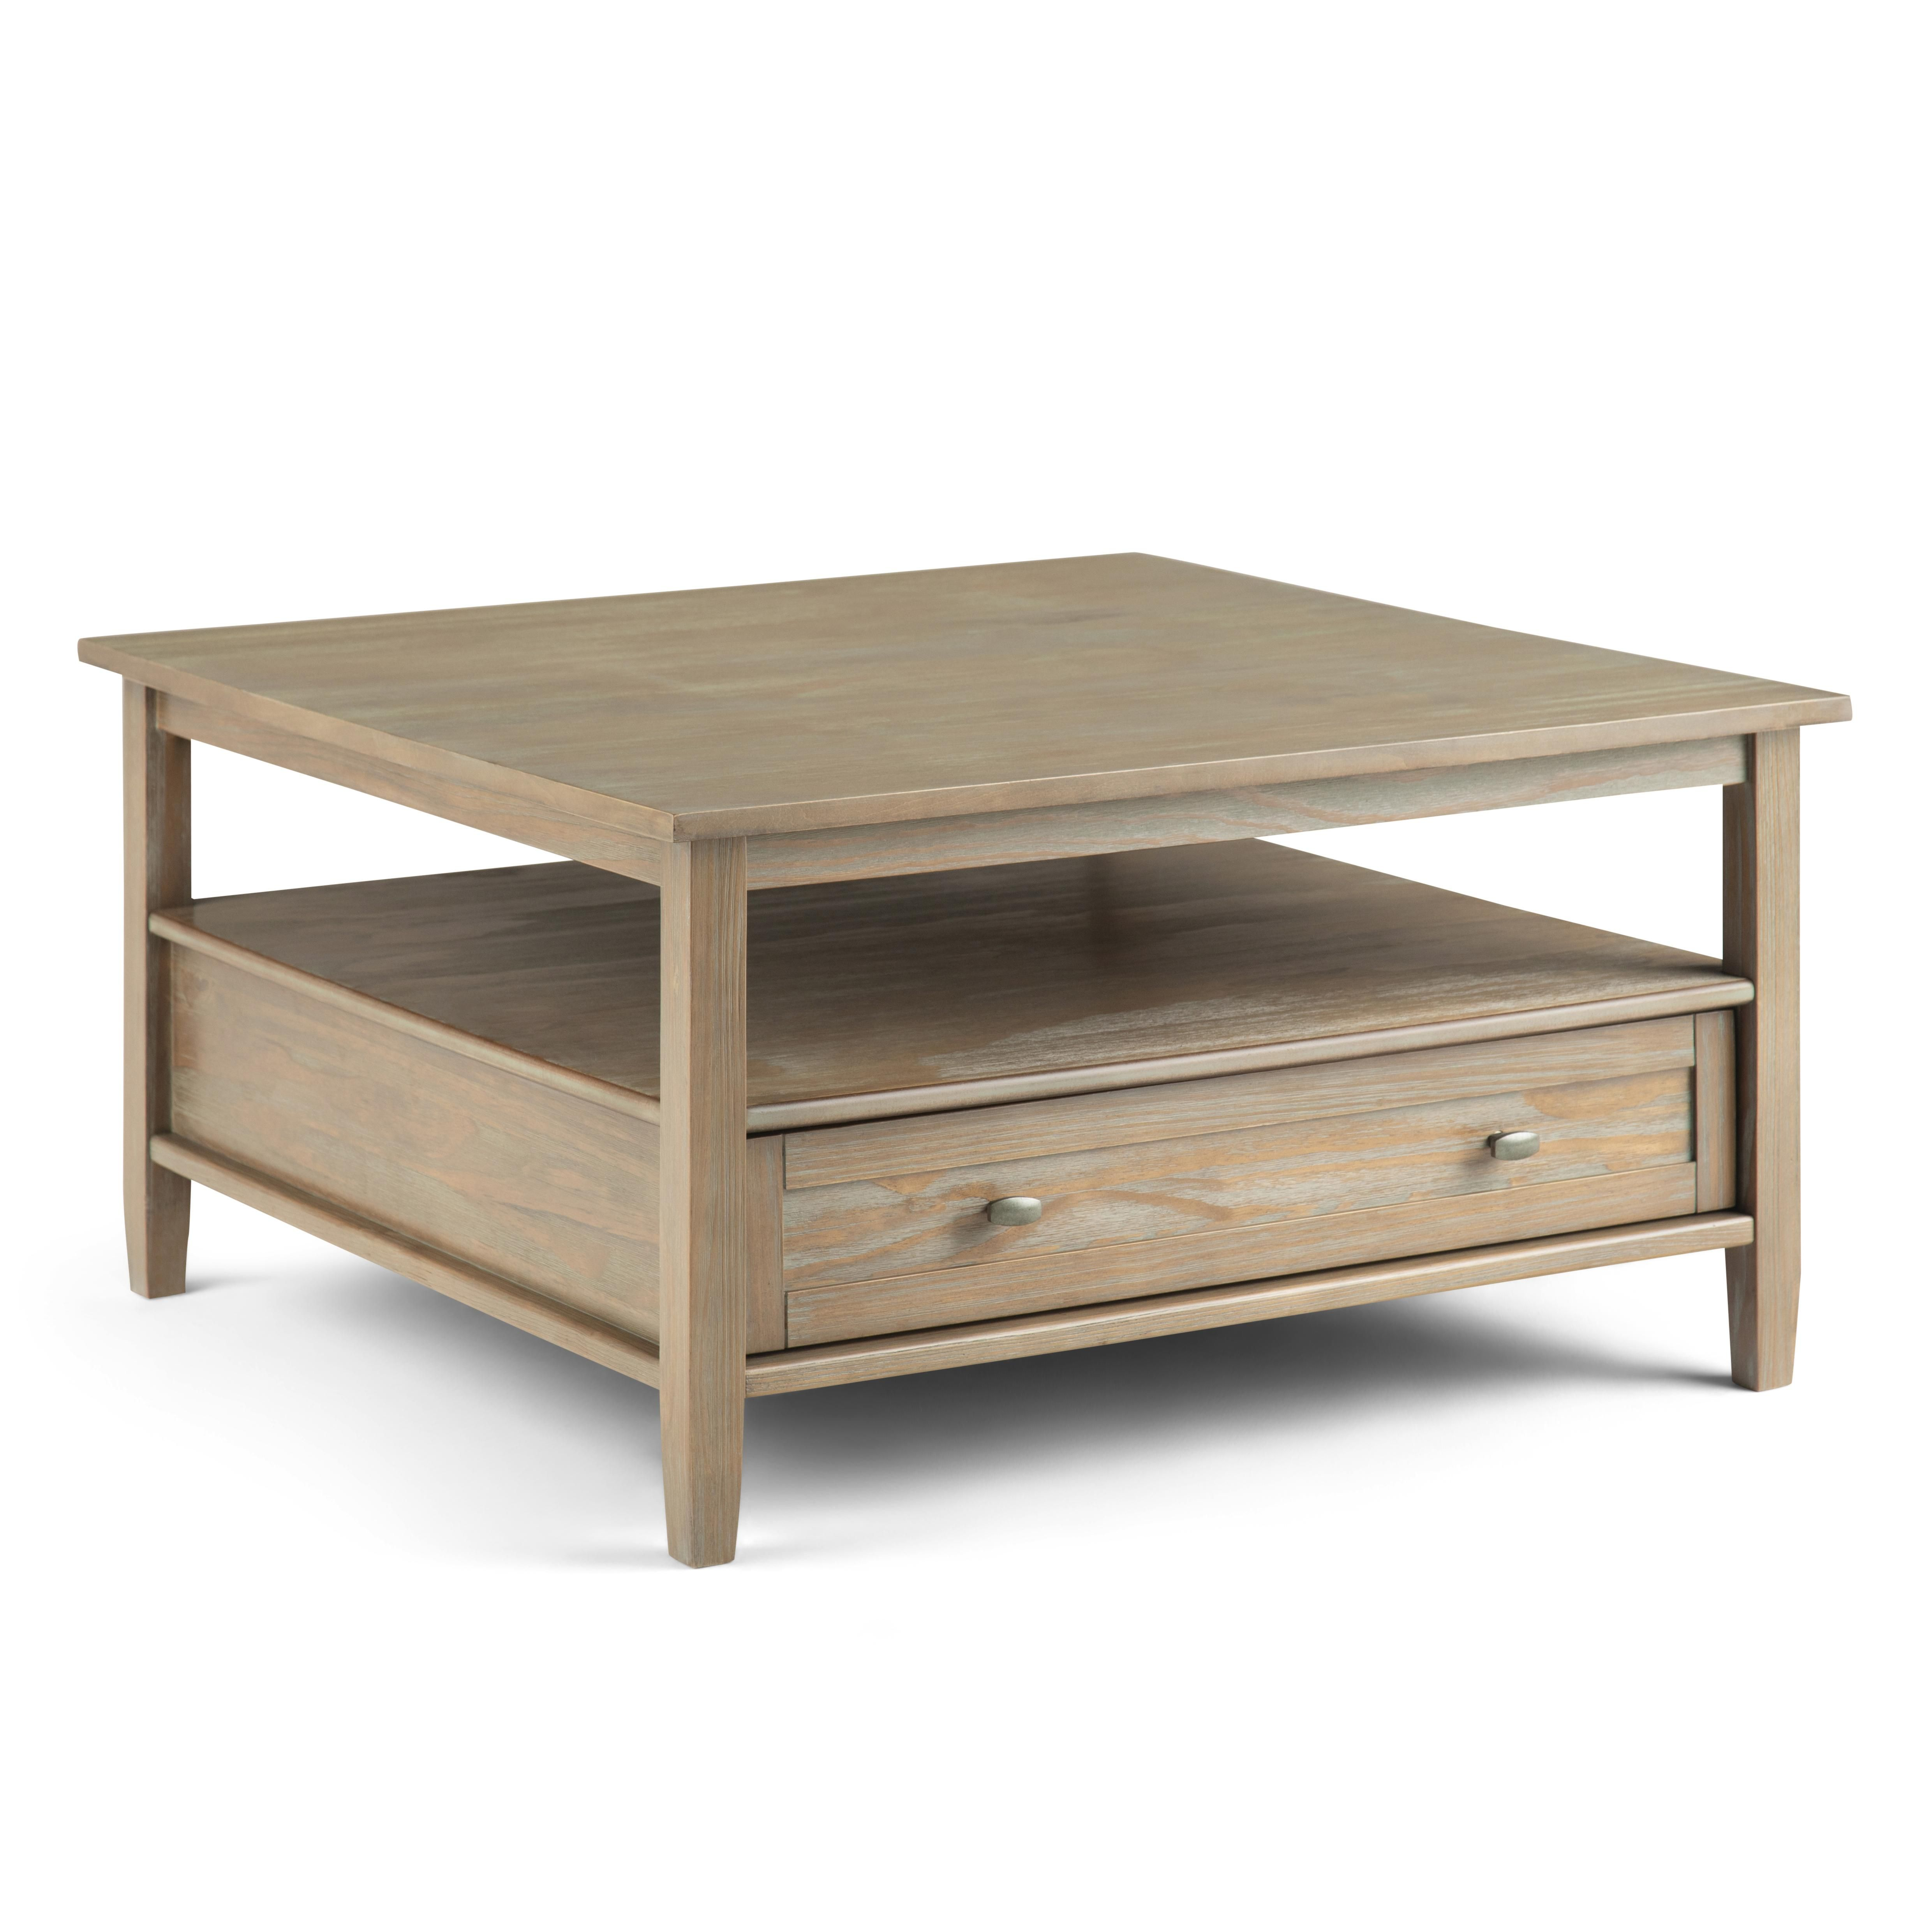 Warm Shaker Solid Wood 36 Inch Wide Square Square Coffee Table In